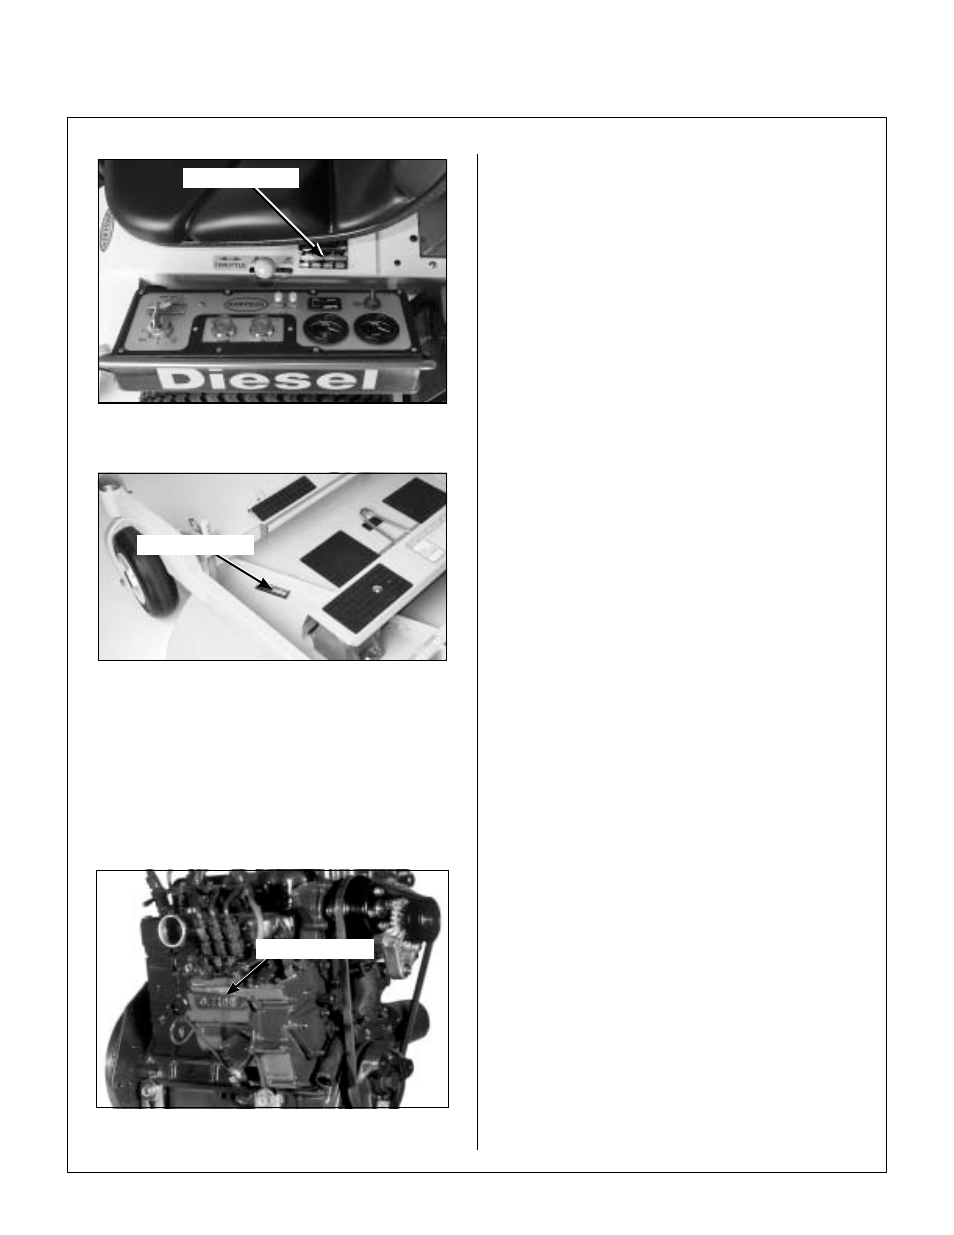 Tractor serial number location, Mower deck serial number location, Engine  serial number location   Walker MDD (20.9 HP) User Manual   Page 6 / 92